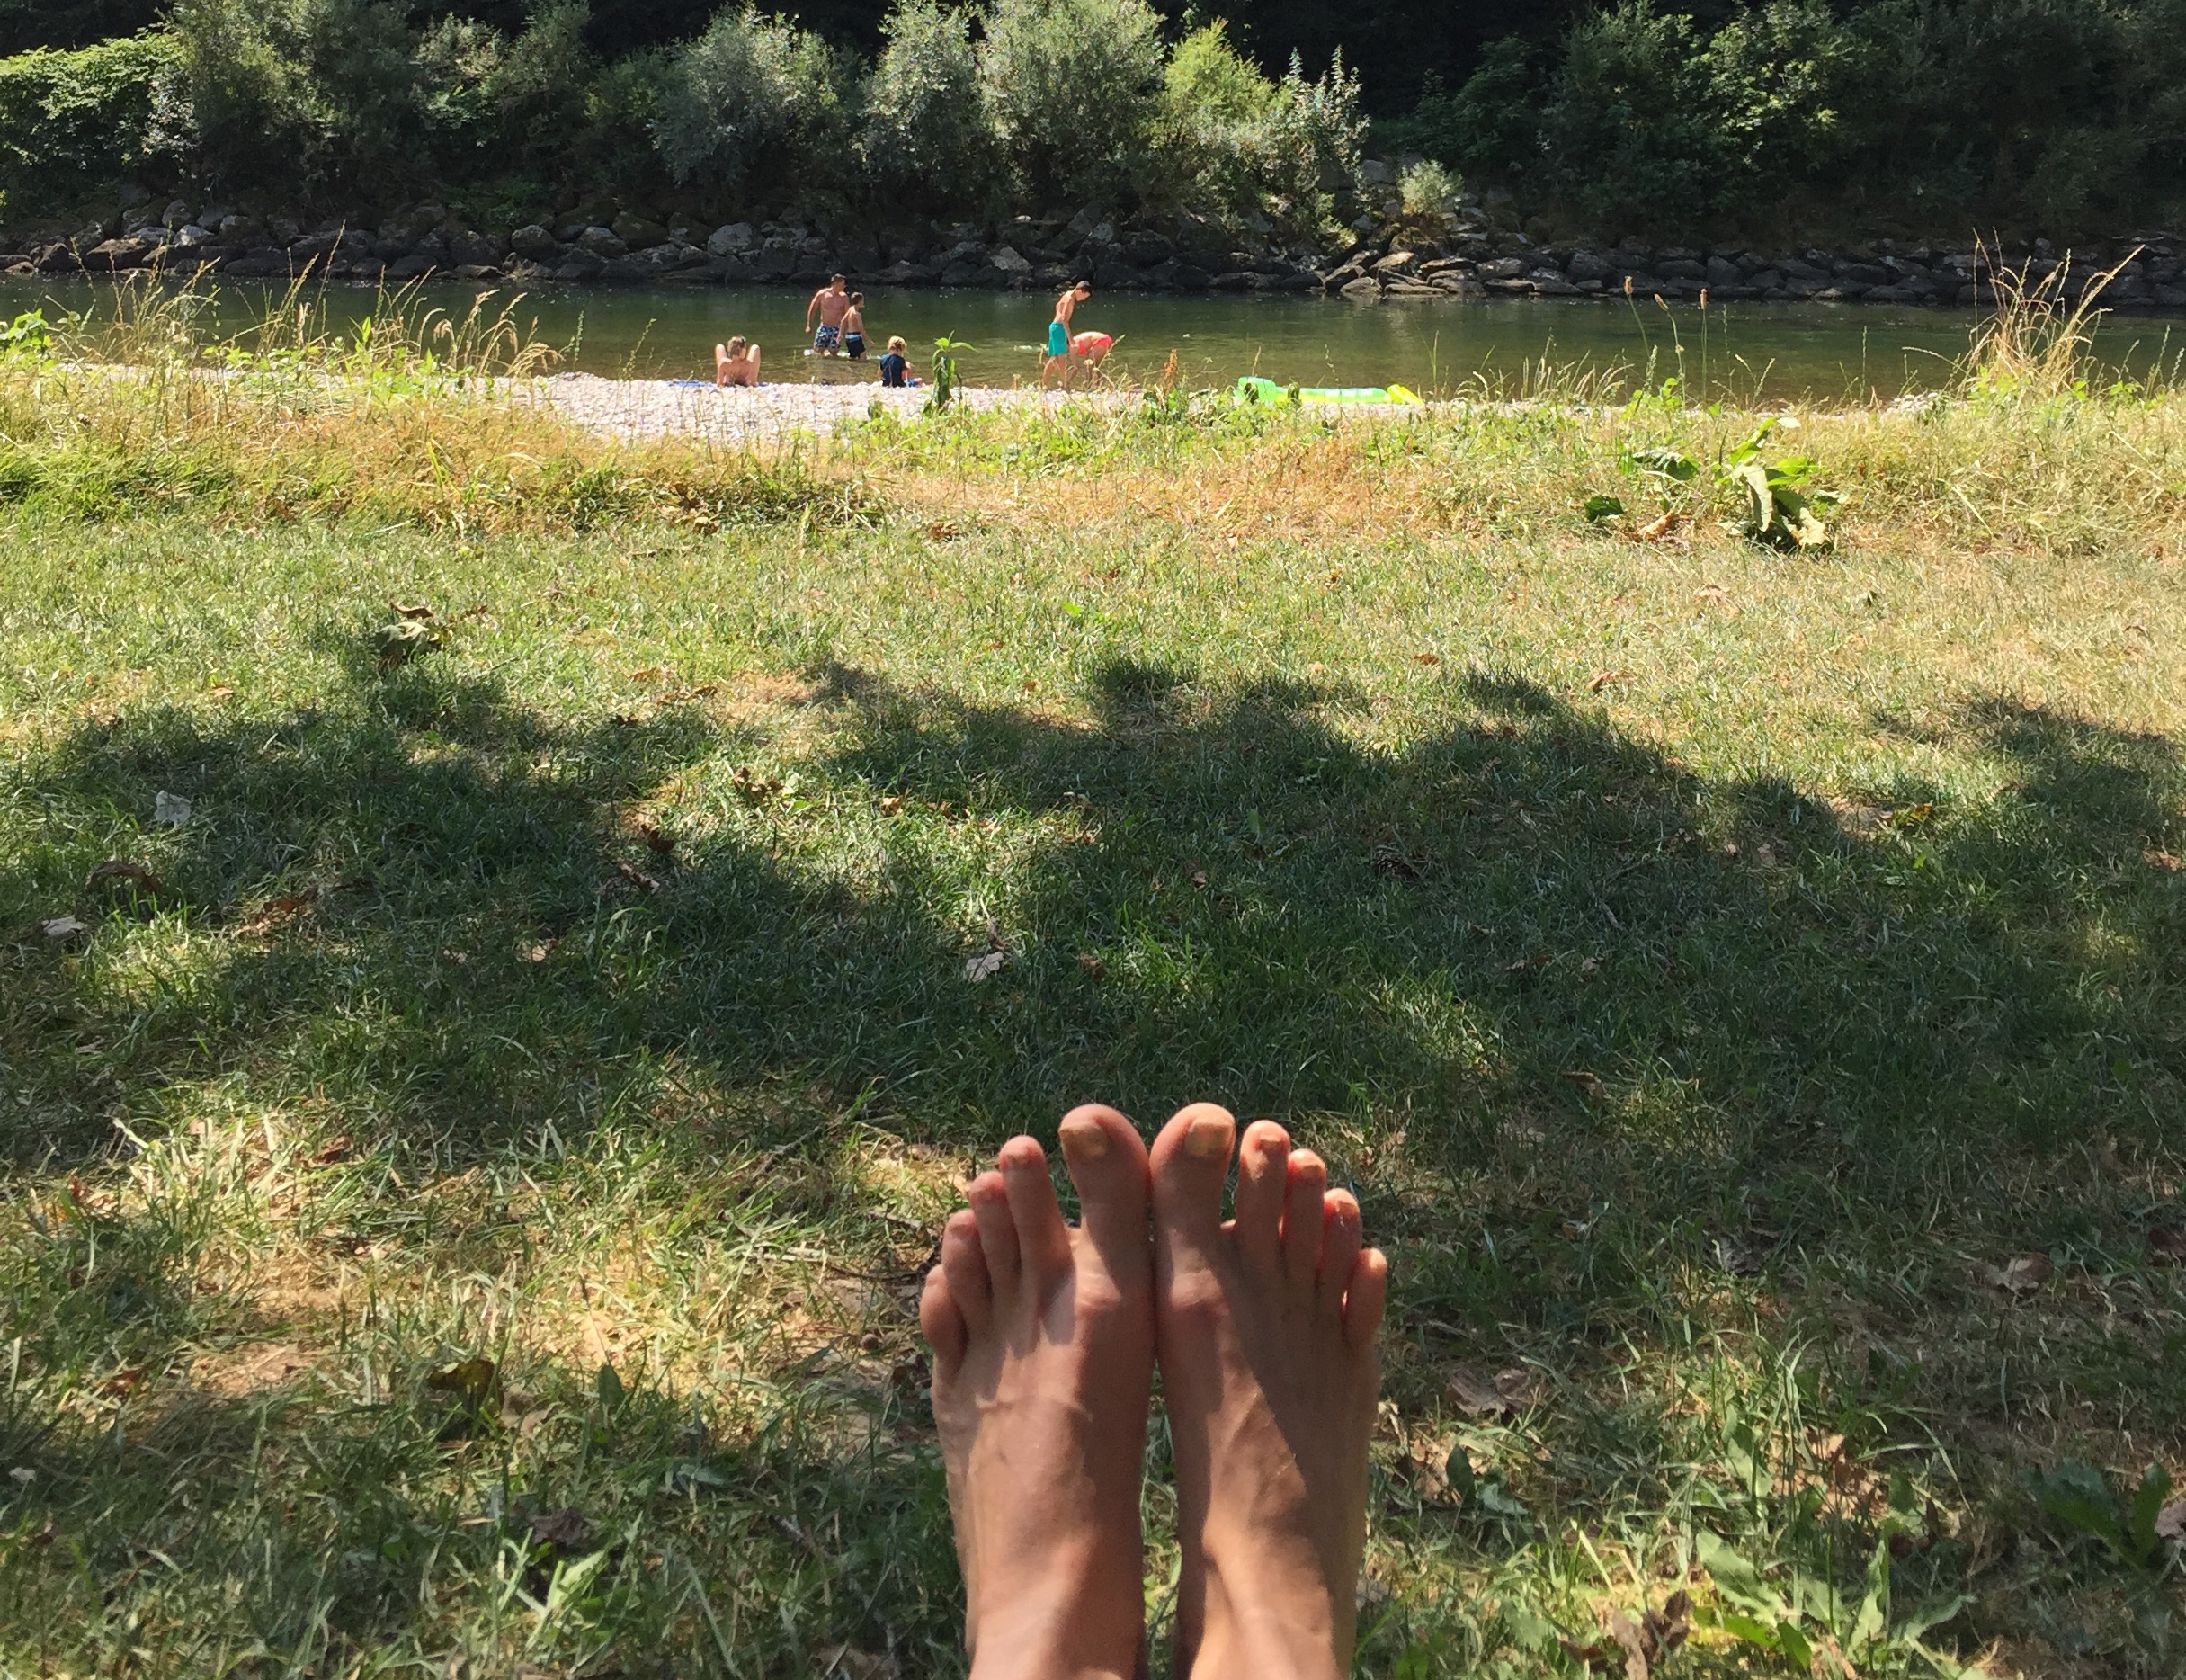 Grounded with bare foot_www.esthersviewpoint.com